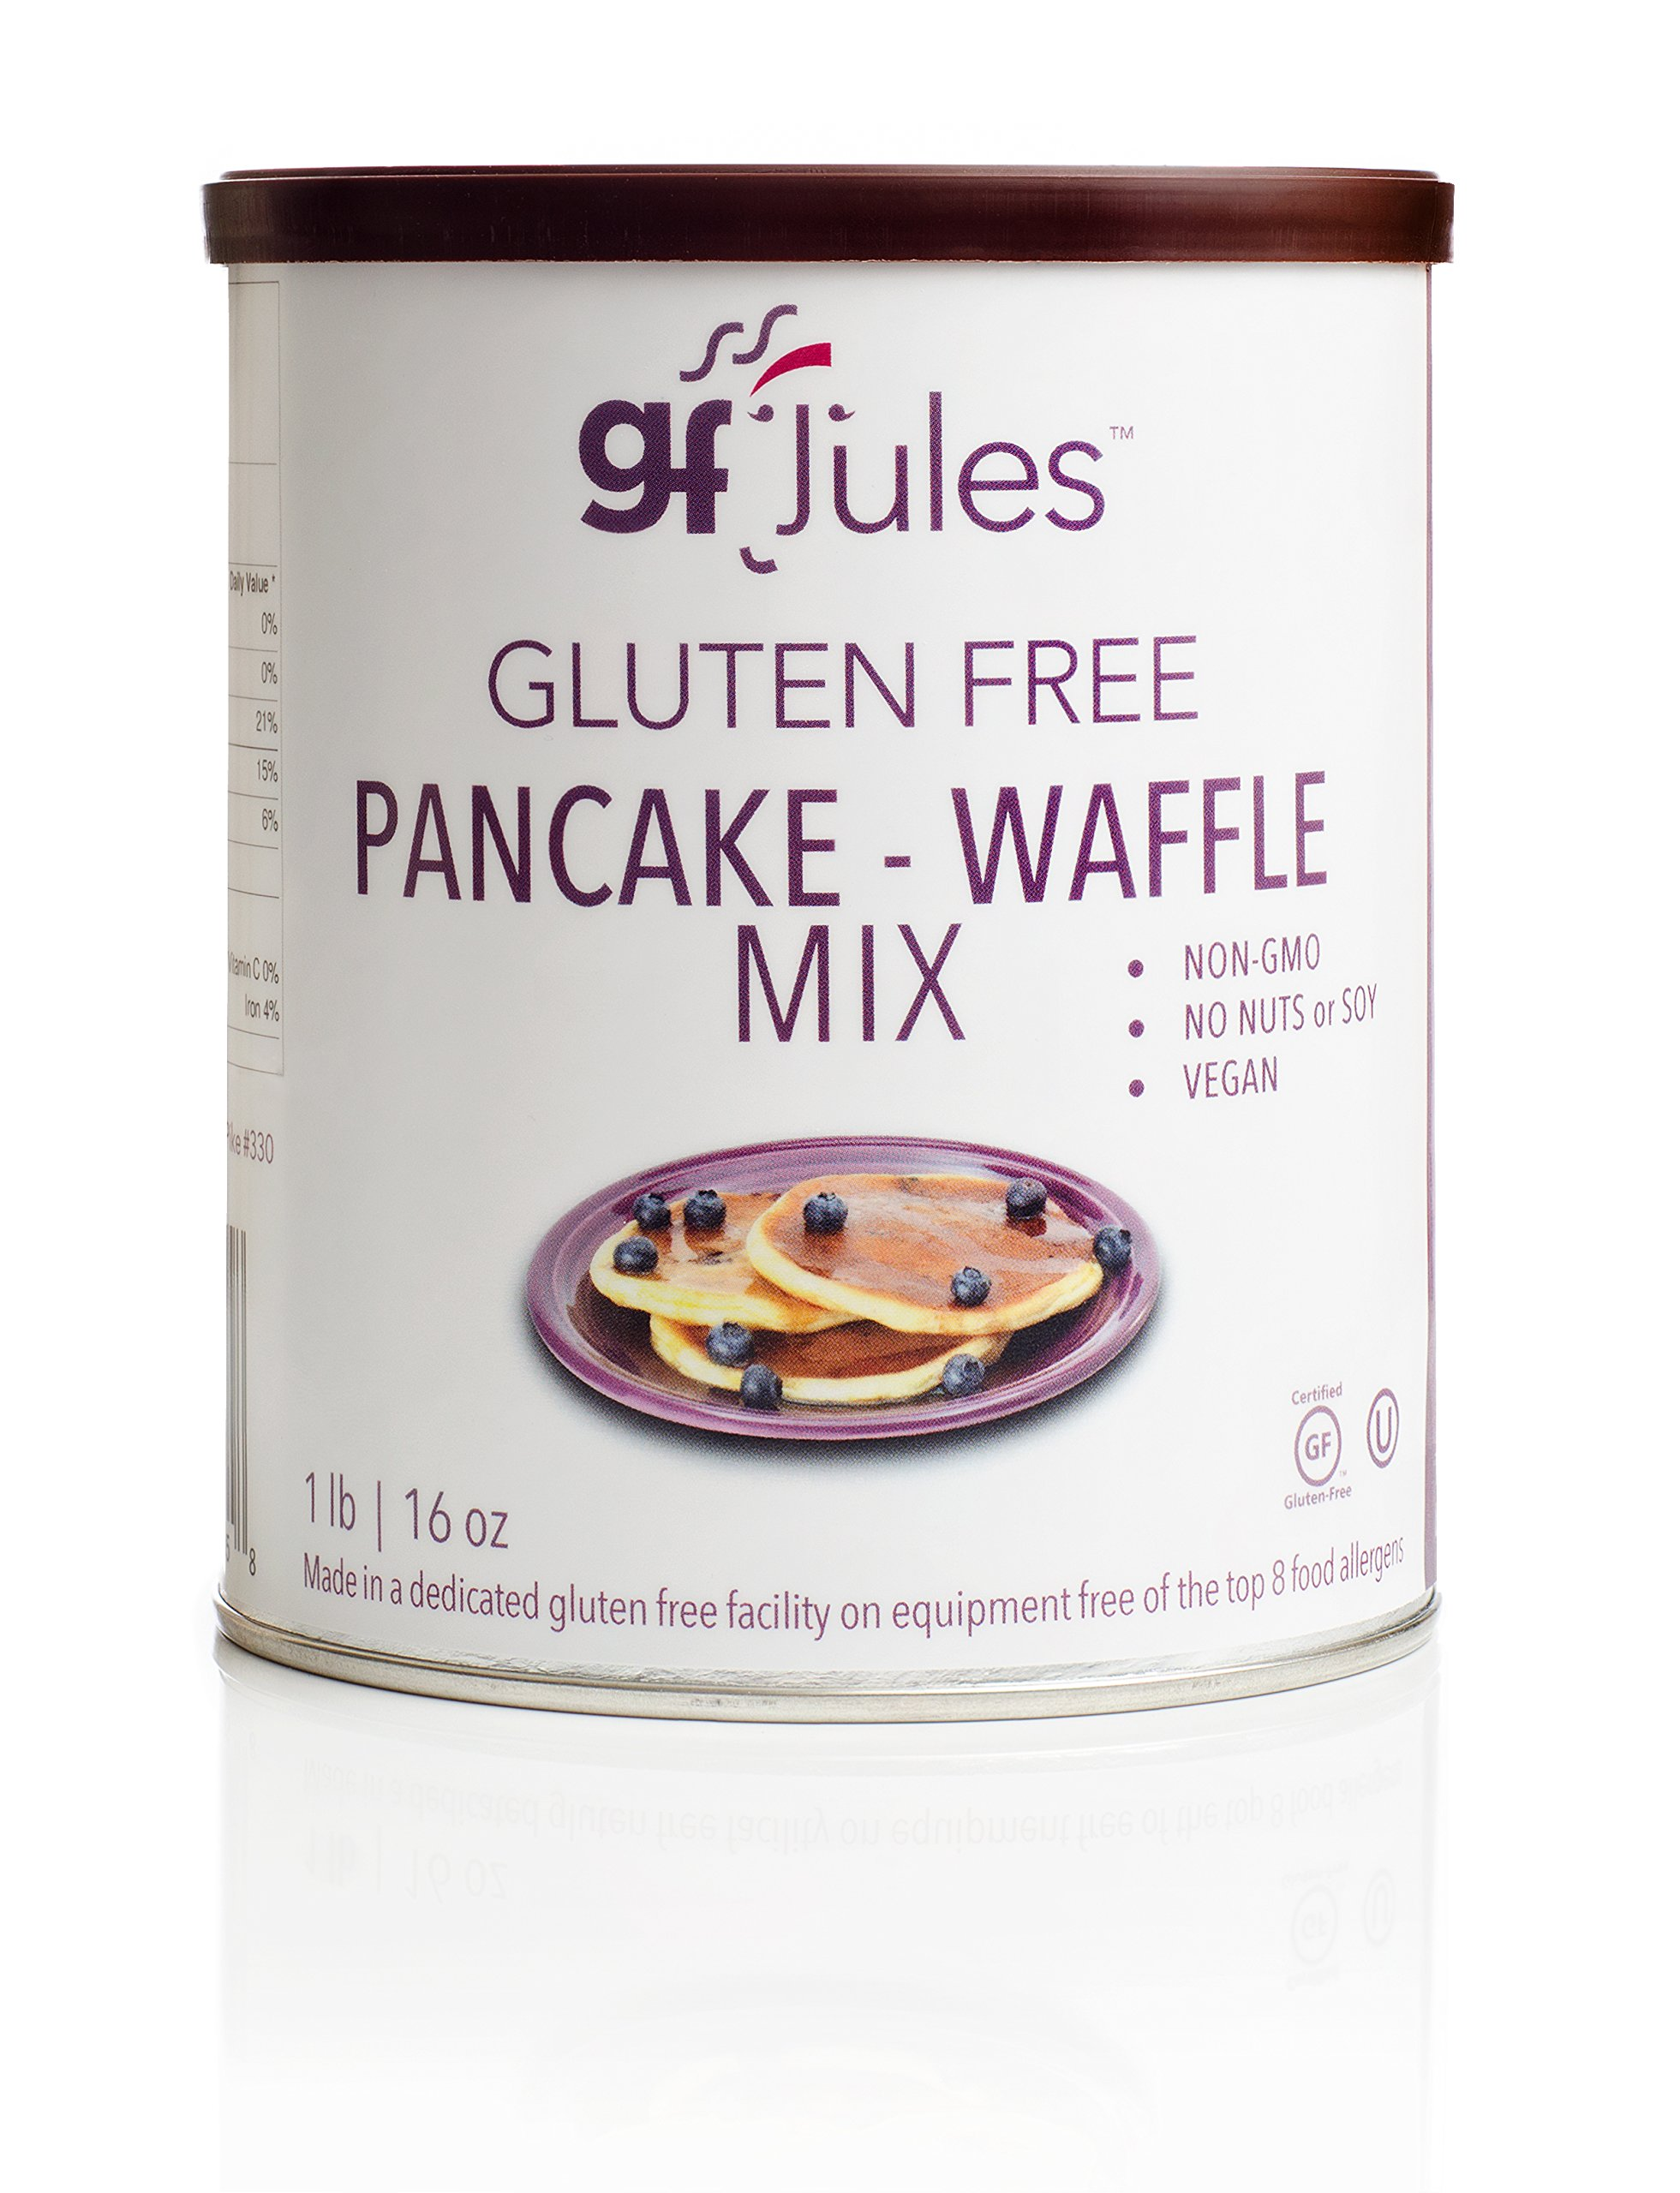 gfJules Gluten Free Pancake & Waffle Mix - Voted #1 by GF Consumers 1 lb, Pack of 1 by gfJules